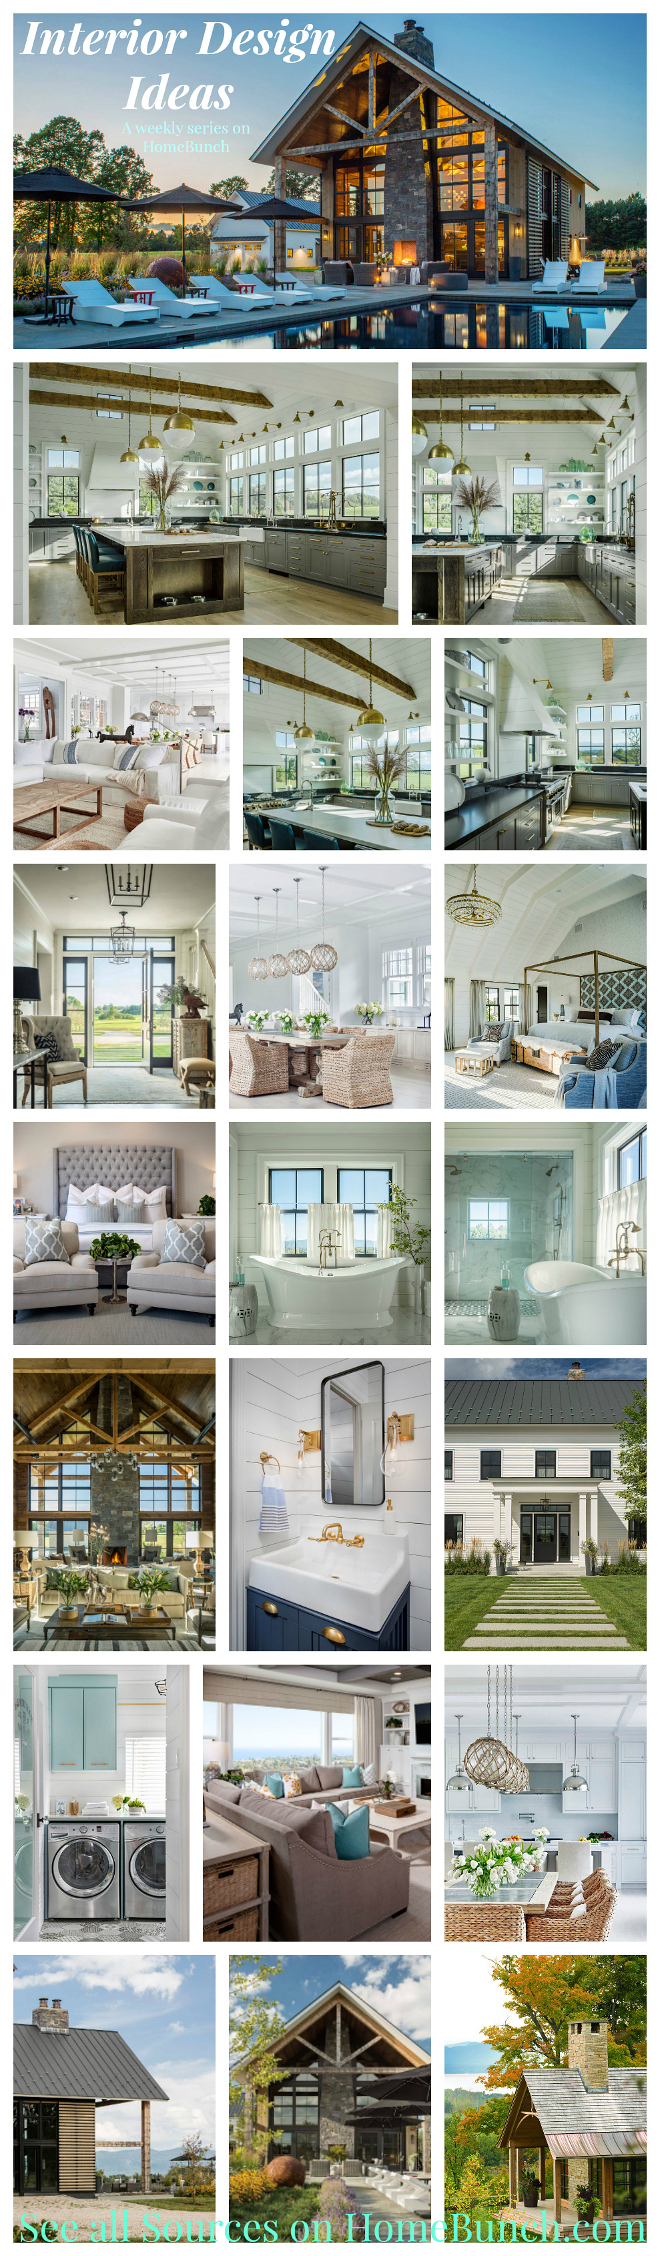 Interior Design Ideas. Interior Design Ideas. Weekly series with the newest interior design ideas. Interior Design Ideas on Home Bunch. #InteriorDesignIdeas